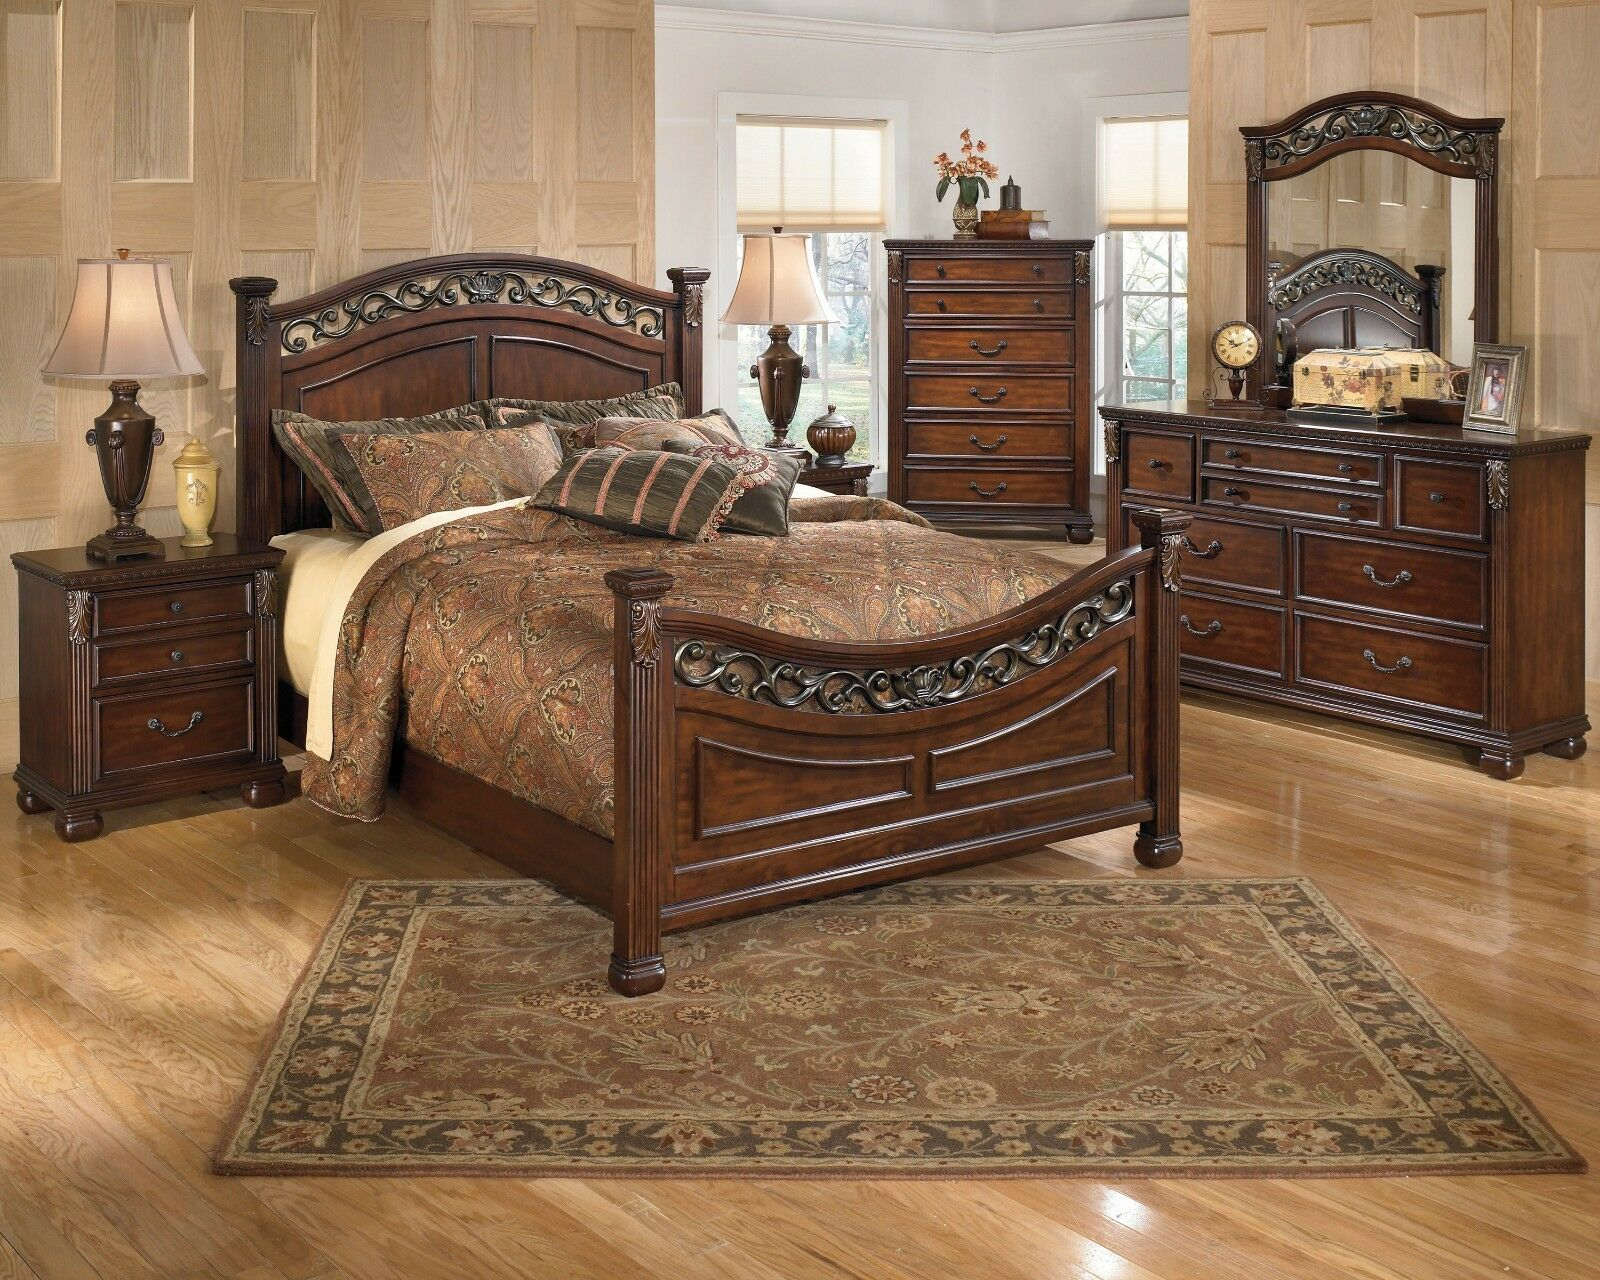 Ashley Furniture Trishley Queen Panel English Dovetail 6 Piece Bed Set B659 For Sale Online Ebay